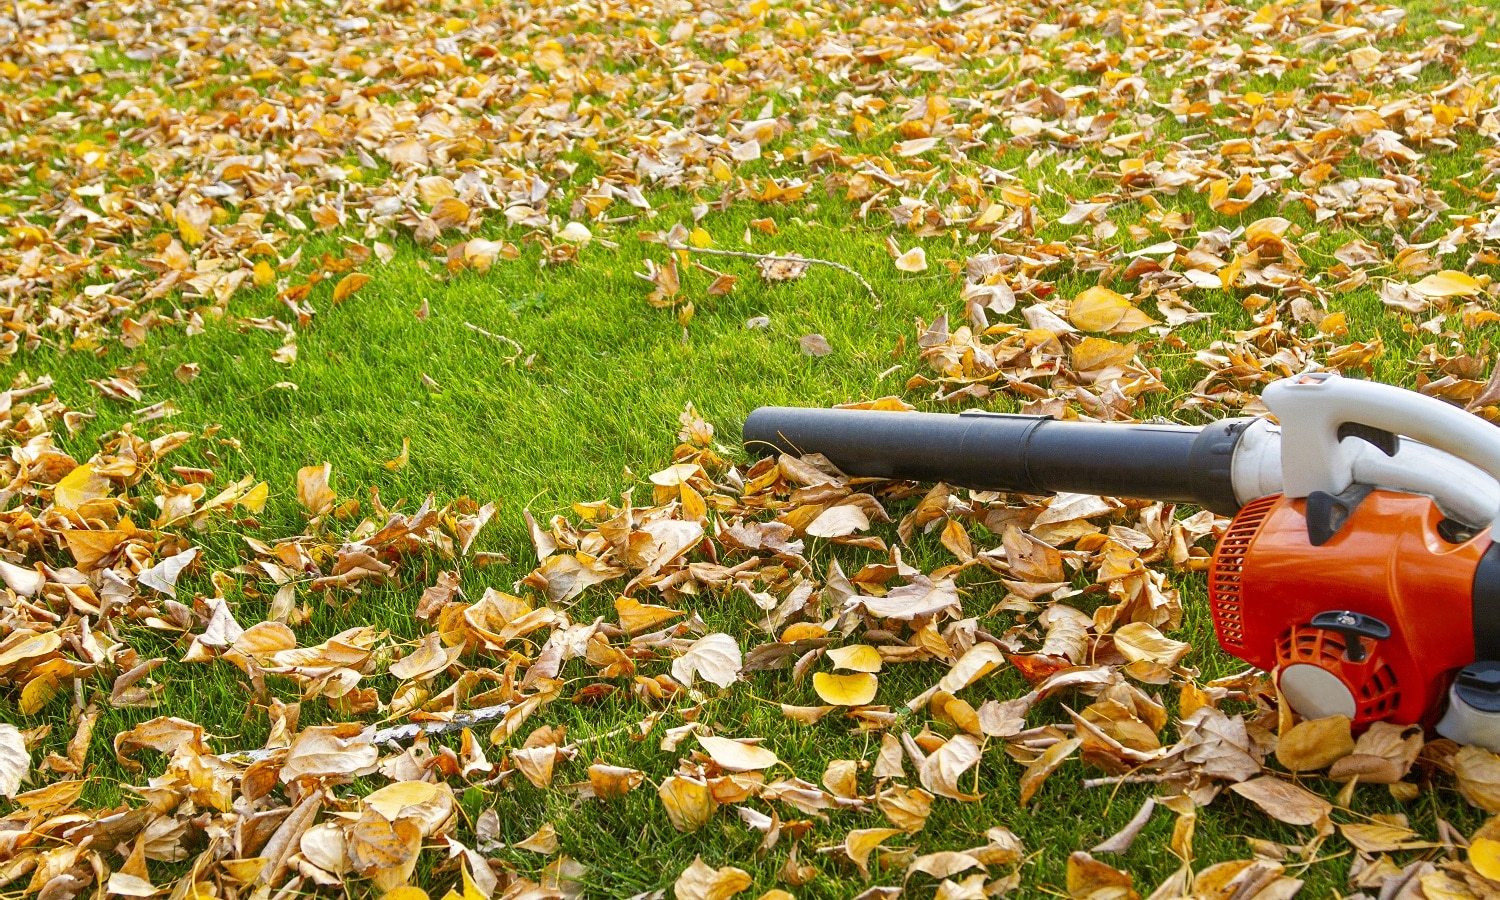 13 Lightest Weight Leaf Blowers For Home Use 04